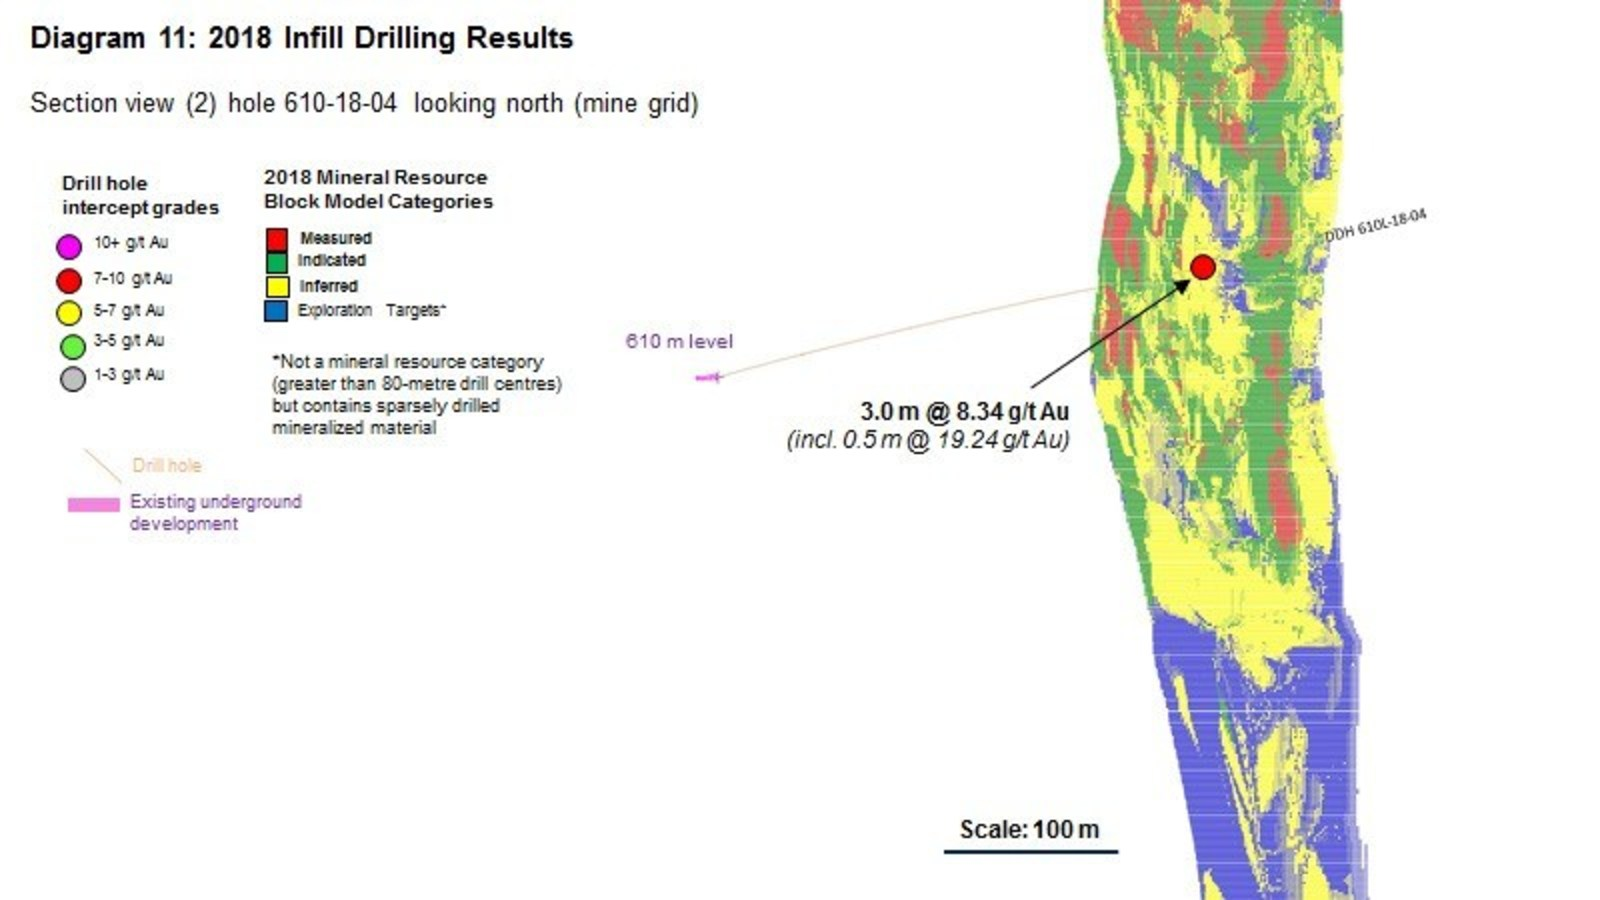 Diagram 11 : 2018 Infill Drilling Results